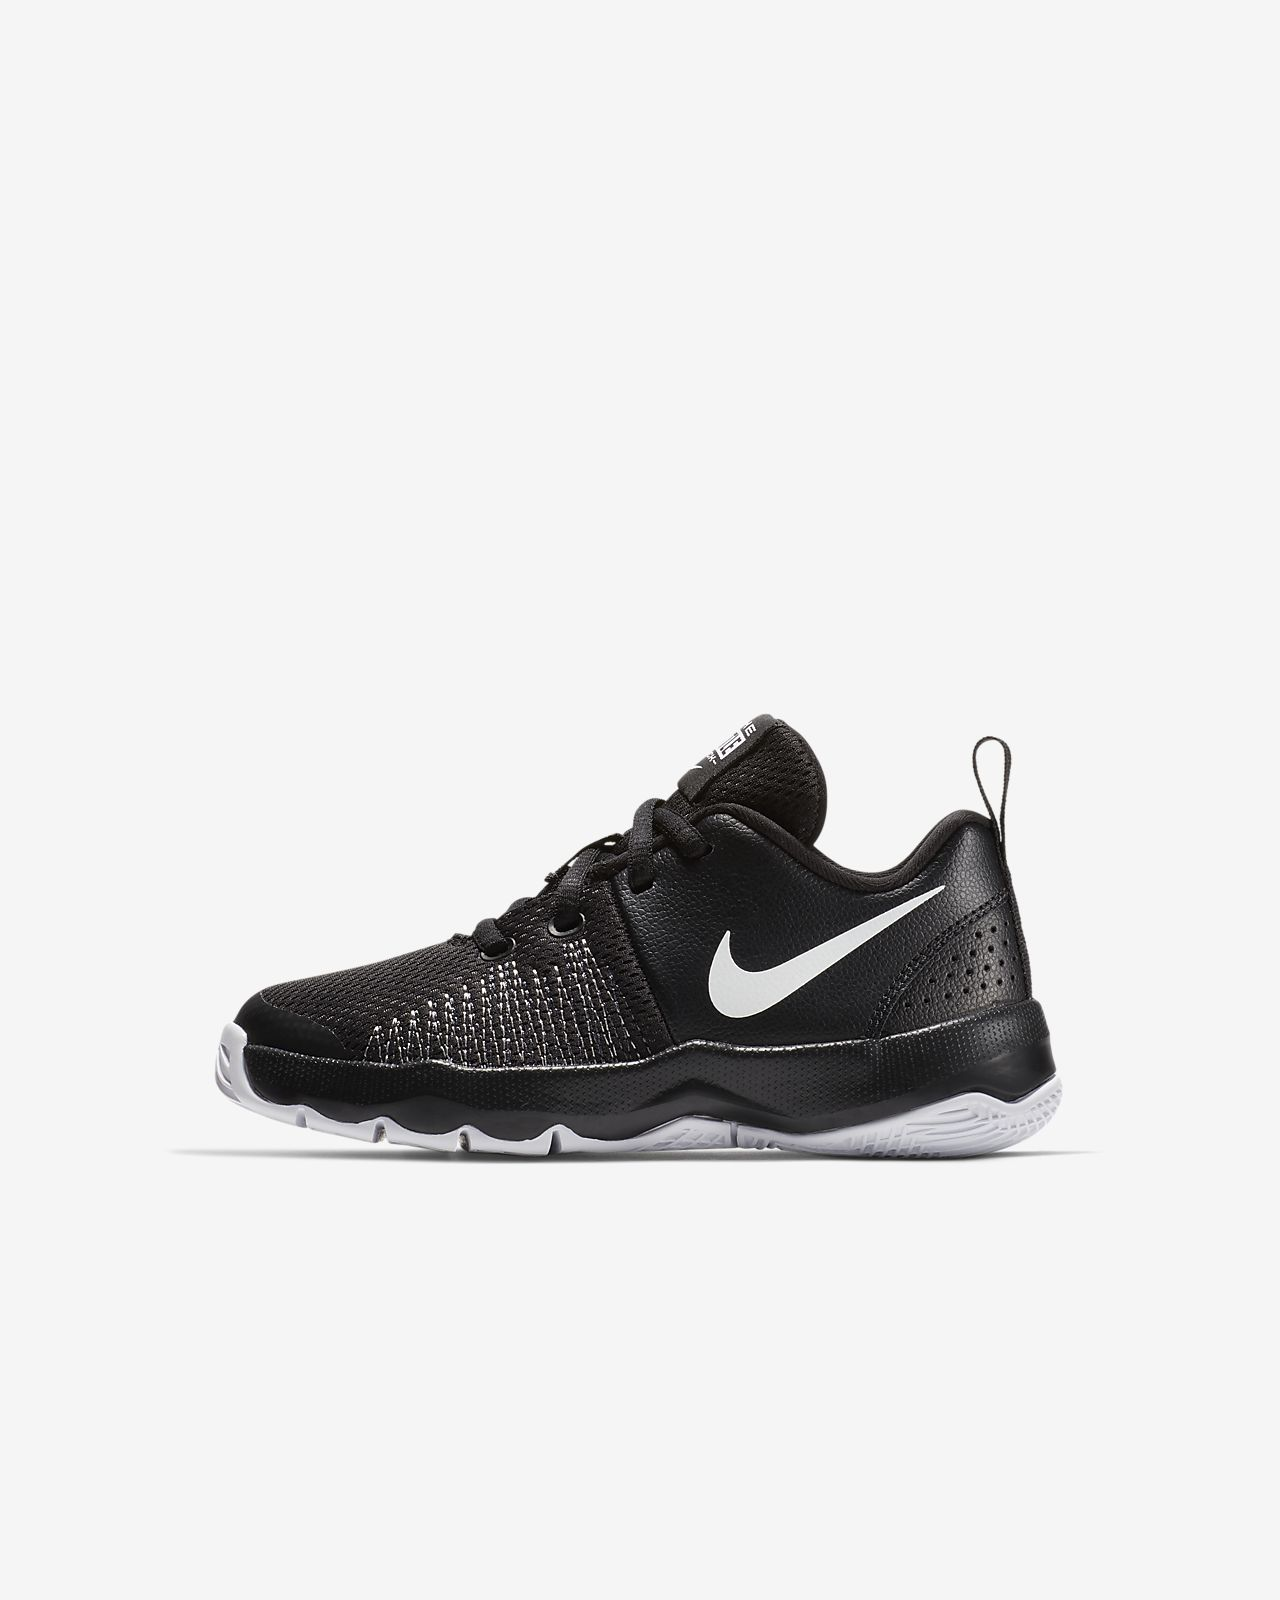 2bdf1f4cb1dc3 Nike Team Hustle Quick Little Kids  Shoe. Nike.com